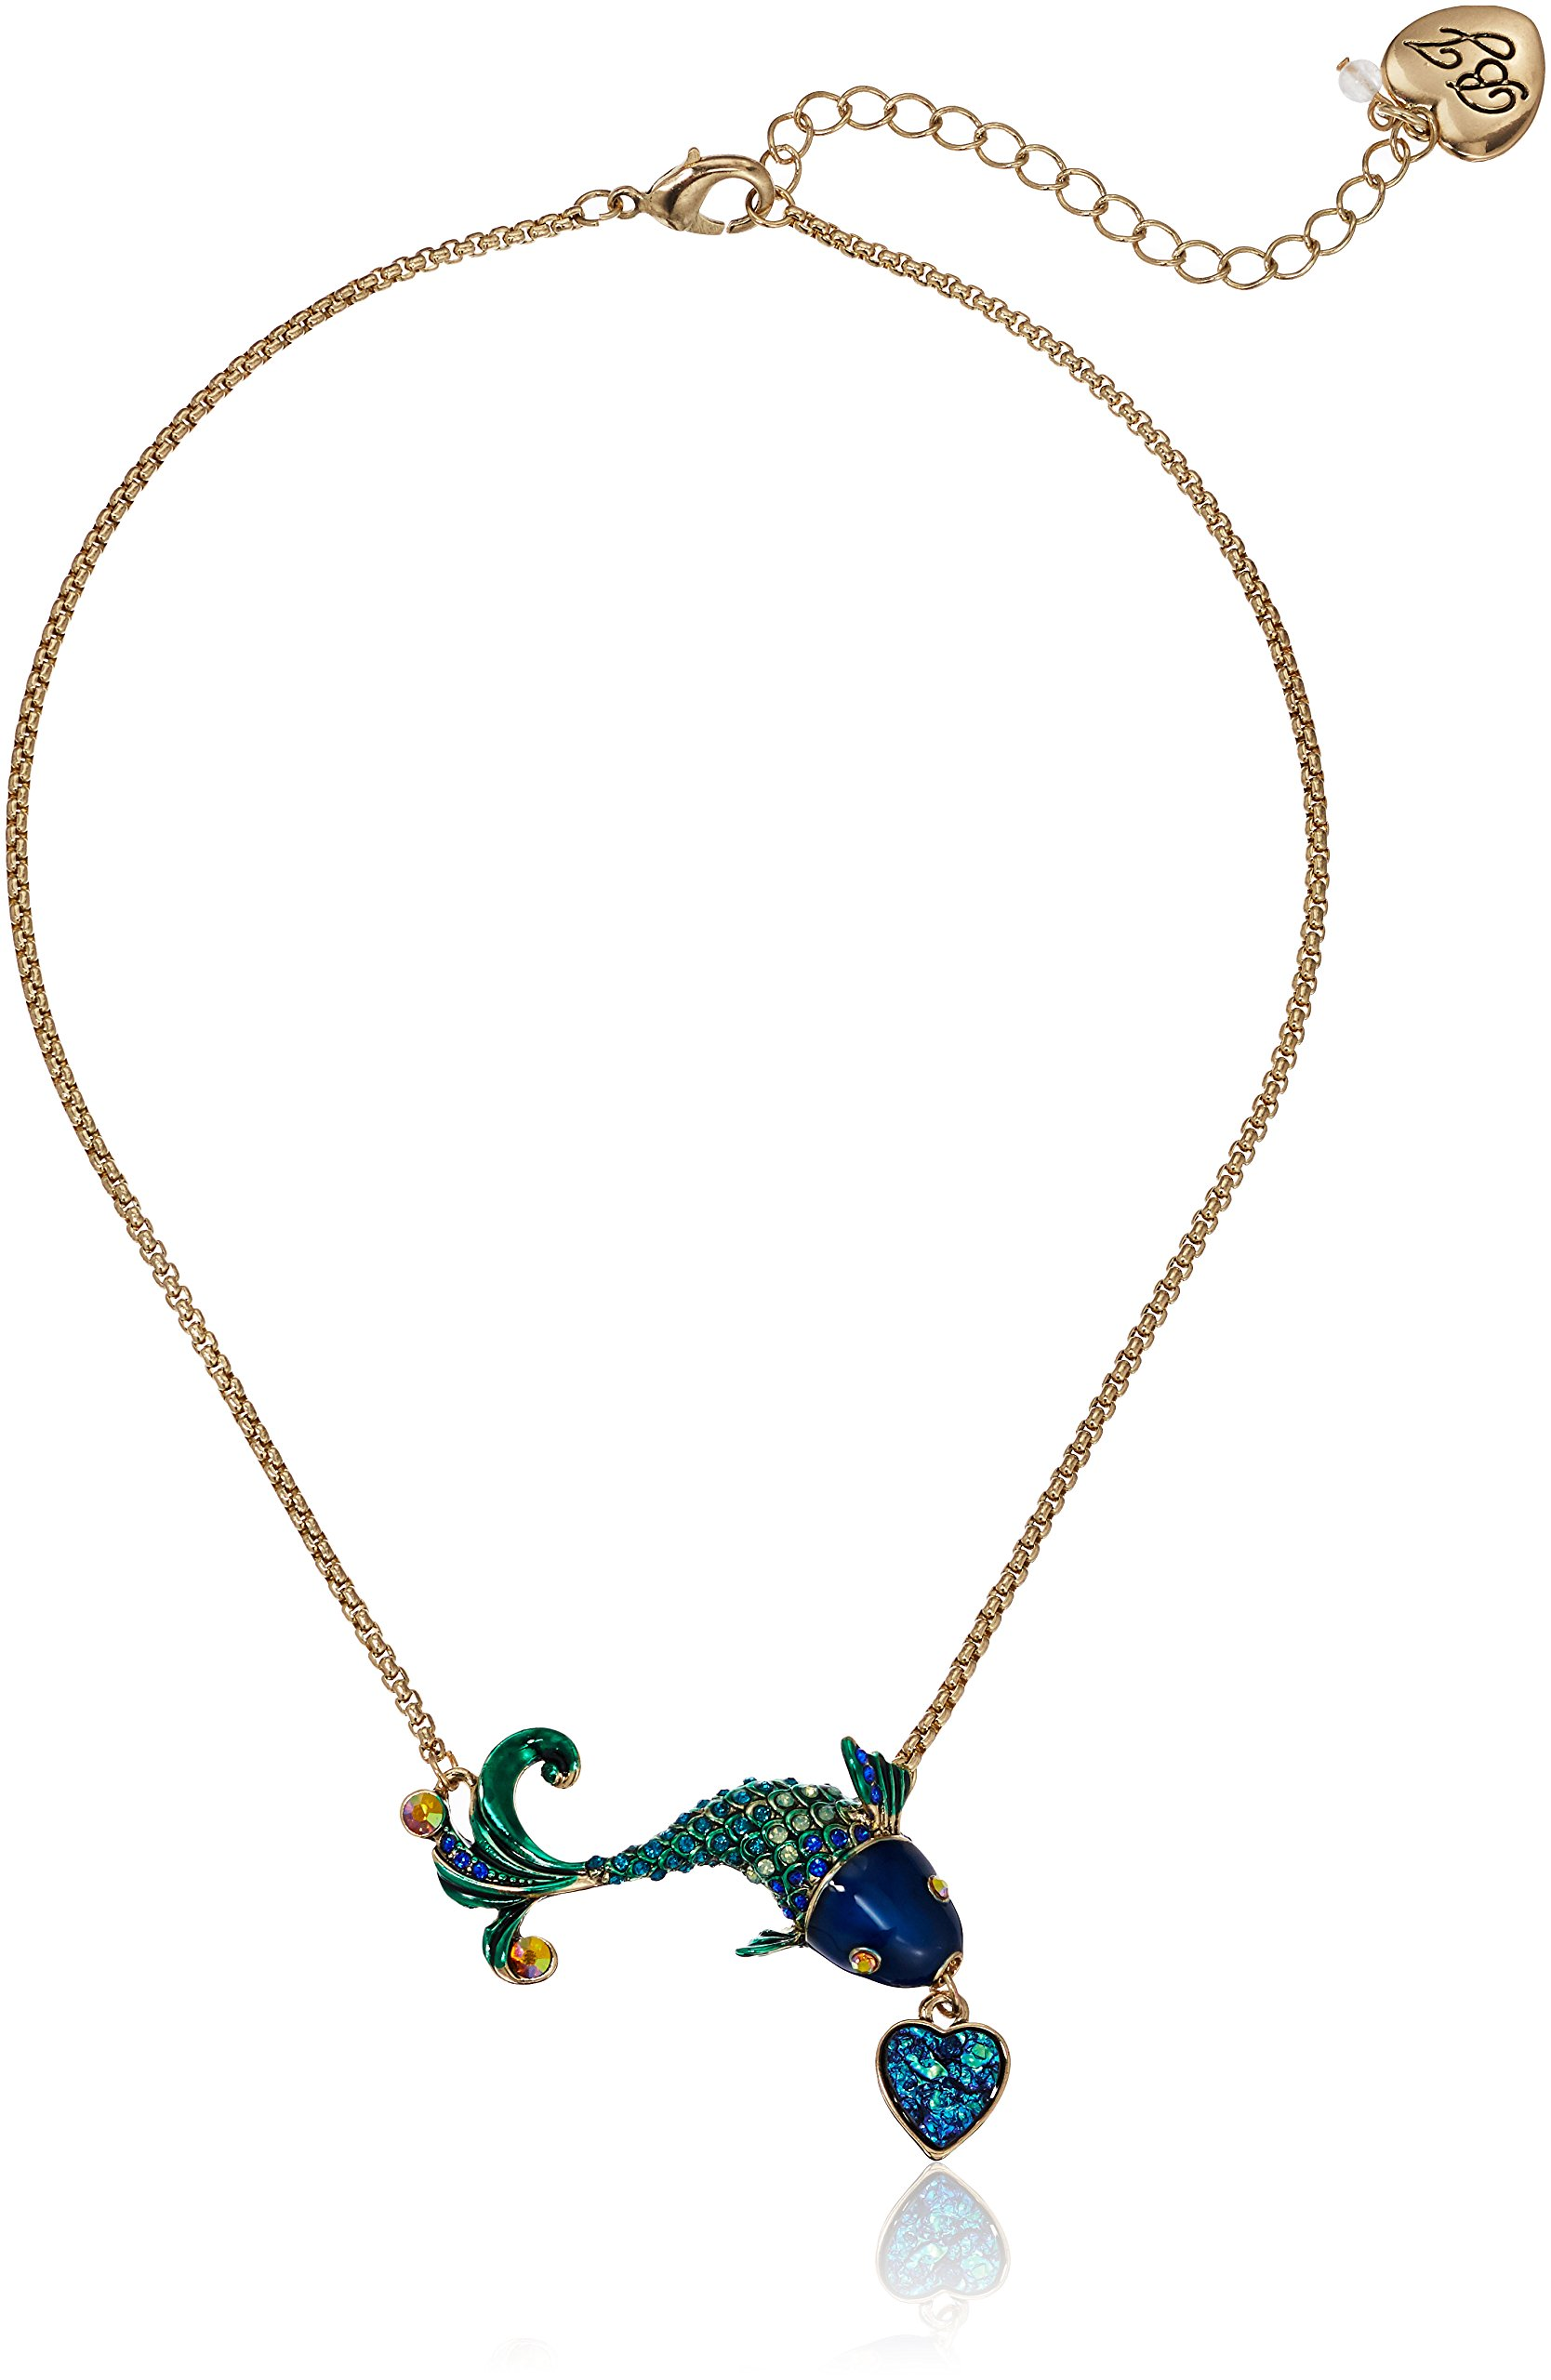 Betsey Johnson Women's Crabby Couture Blue Fish Pendant Necklace, One Size